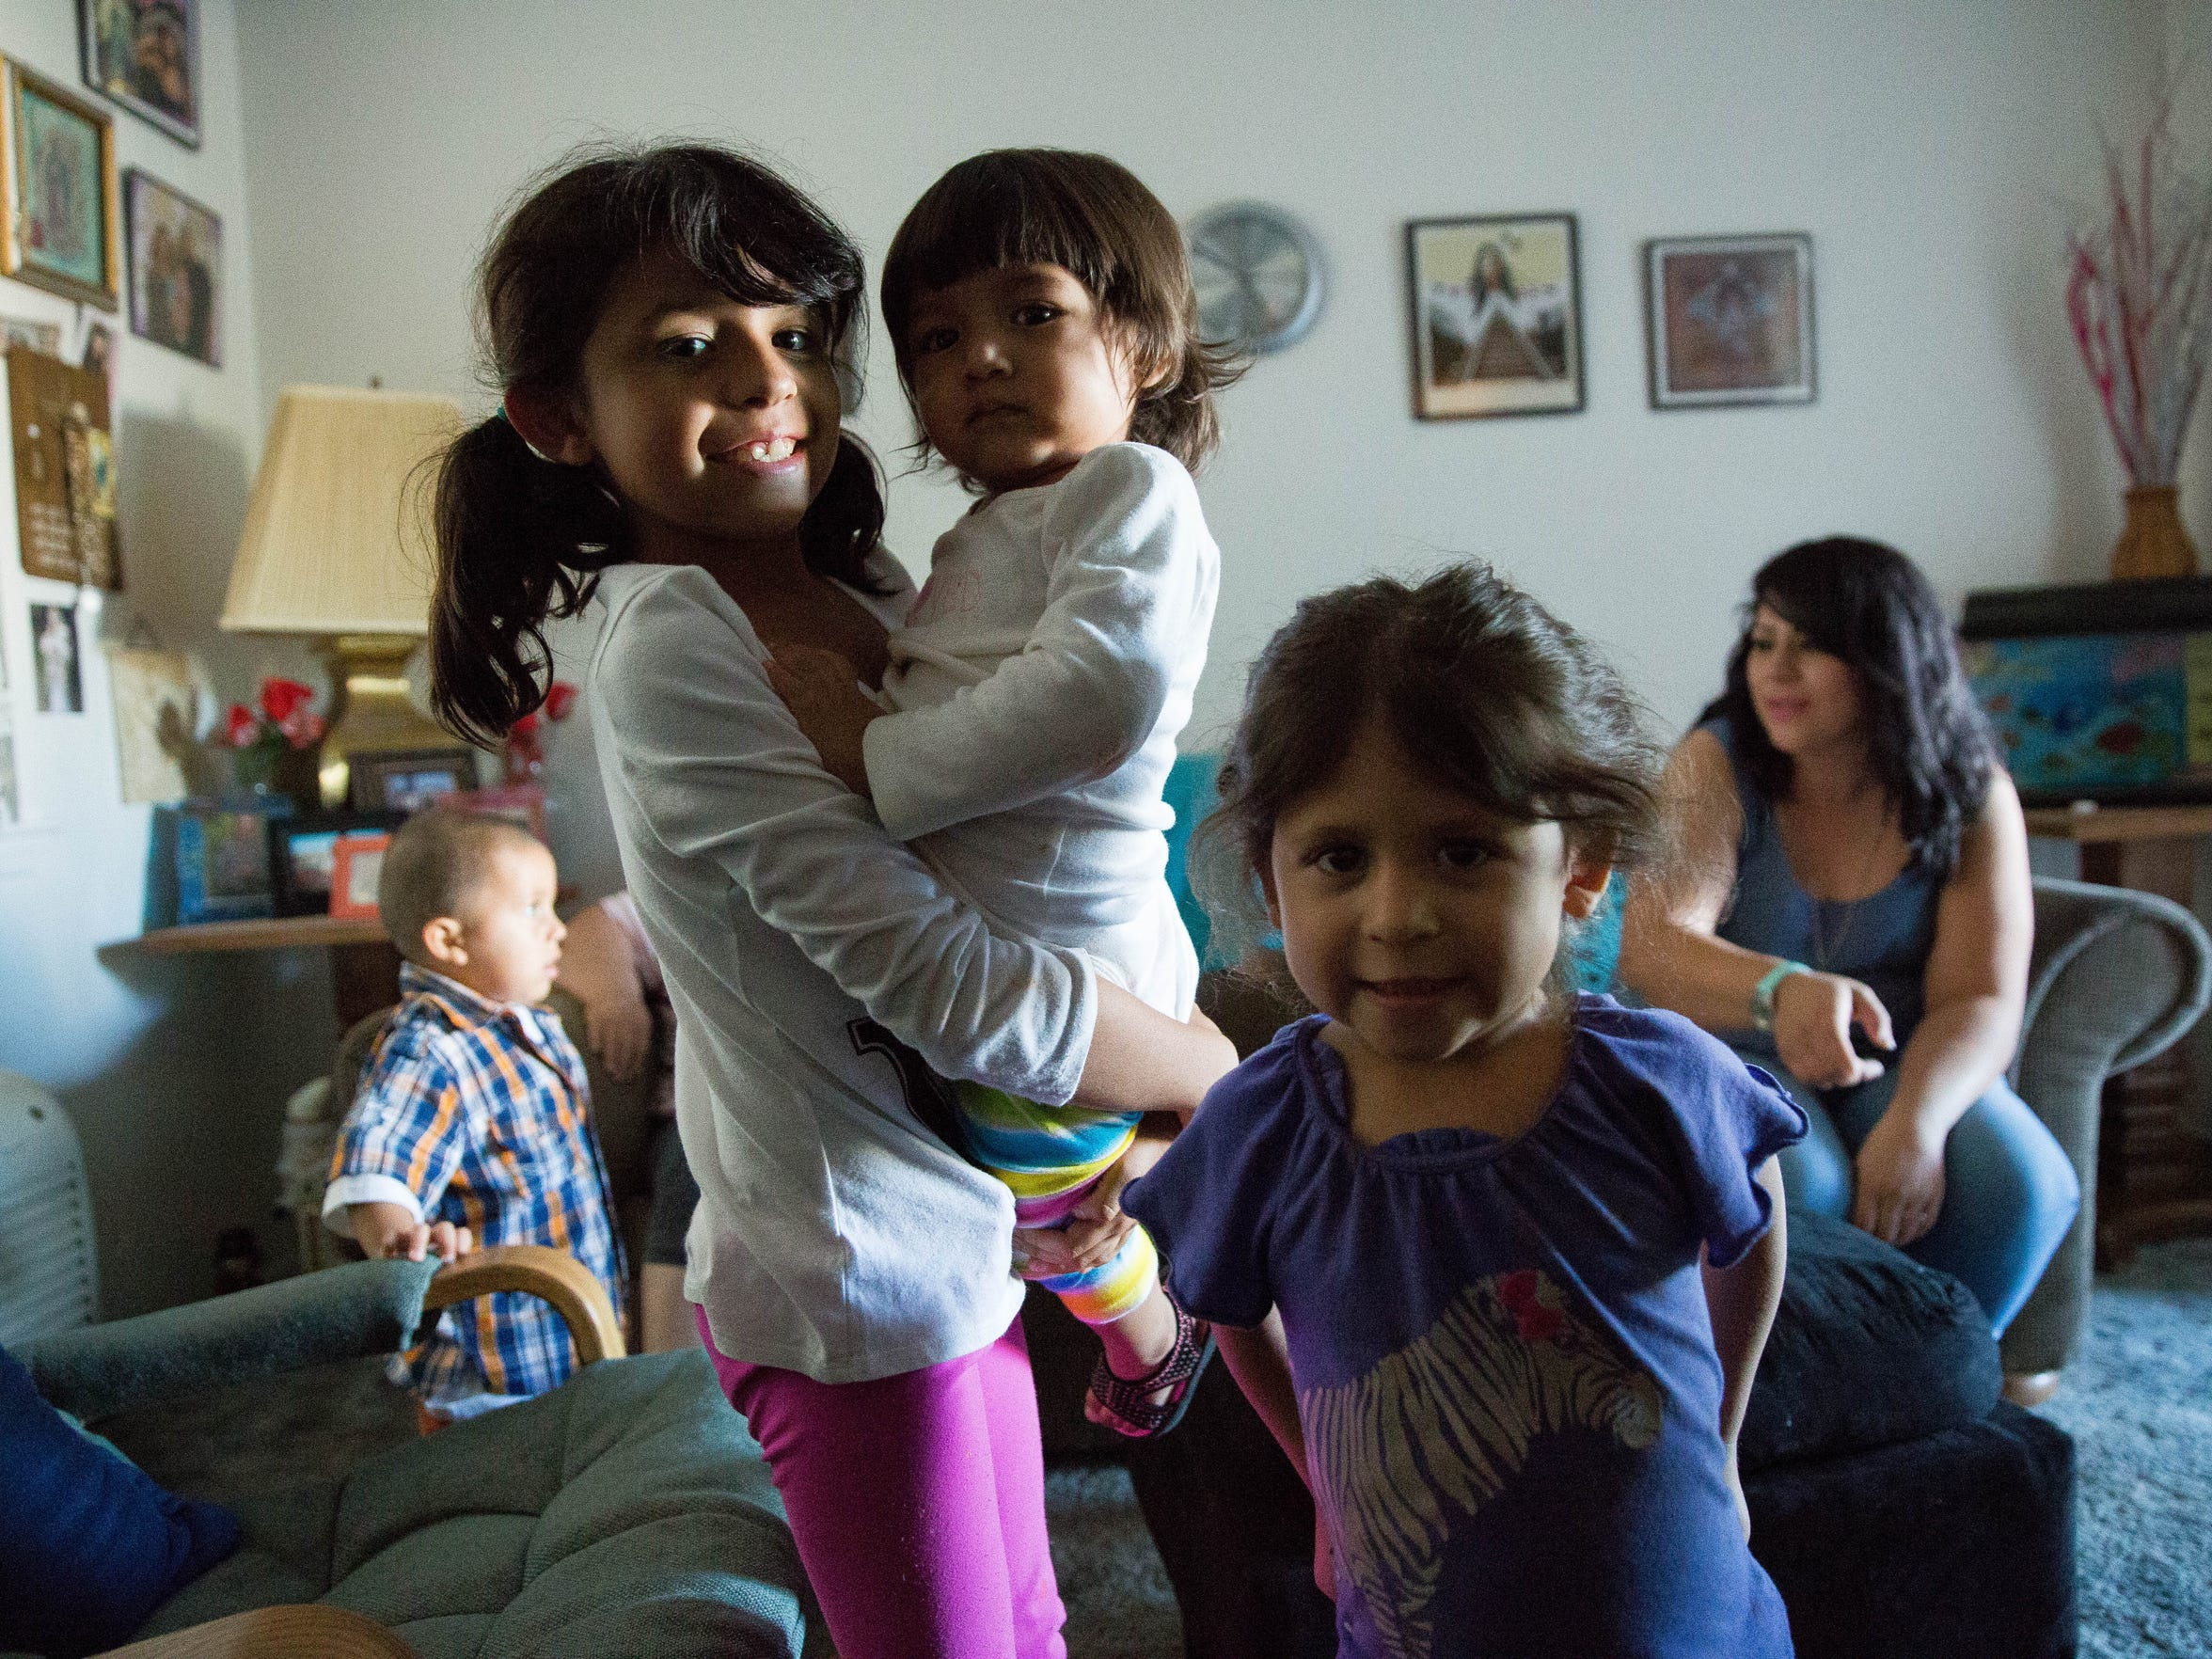 Adrian Pedroza Jr.,2,left, plays  with his mom Adiana Sanchez behind Hazel Sanchez,8, who is holding her cousin Janice Sanchez,1, next to Sophie Pedroza,3, at the Sanchez/Pedroza home. Friday September 29, 2017.